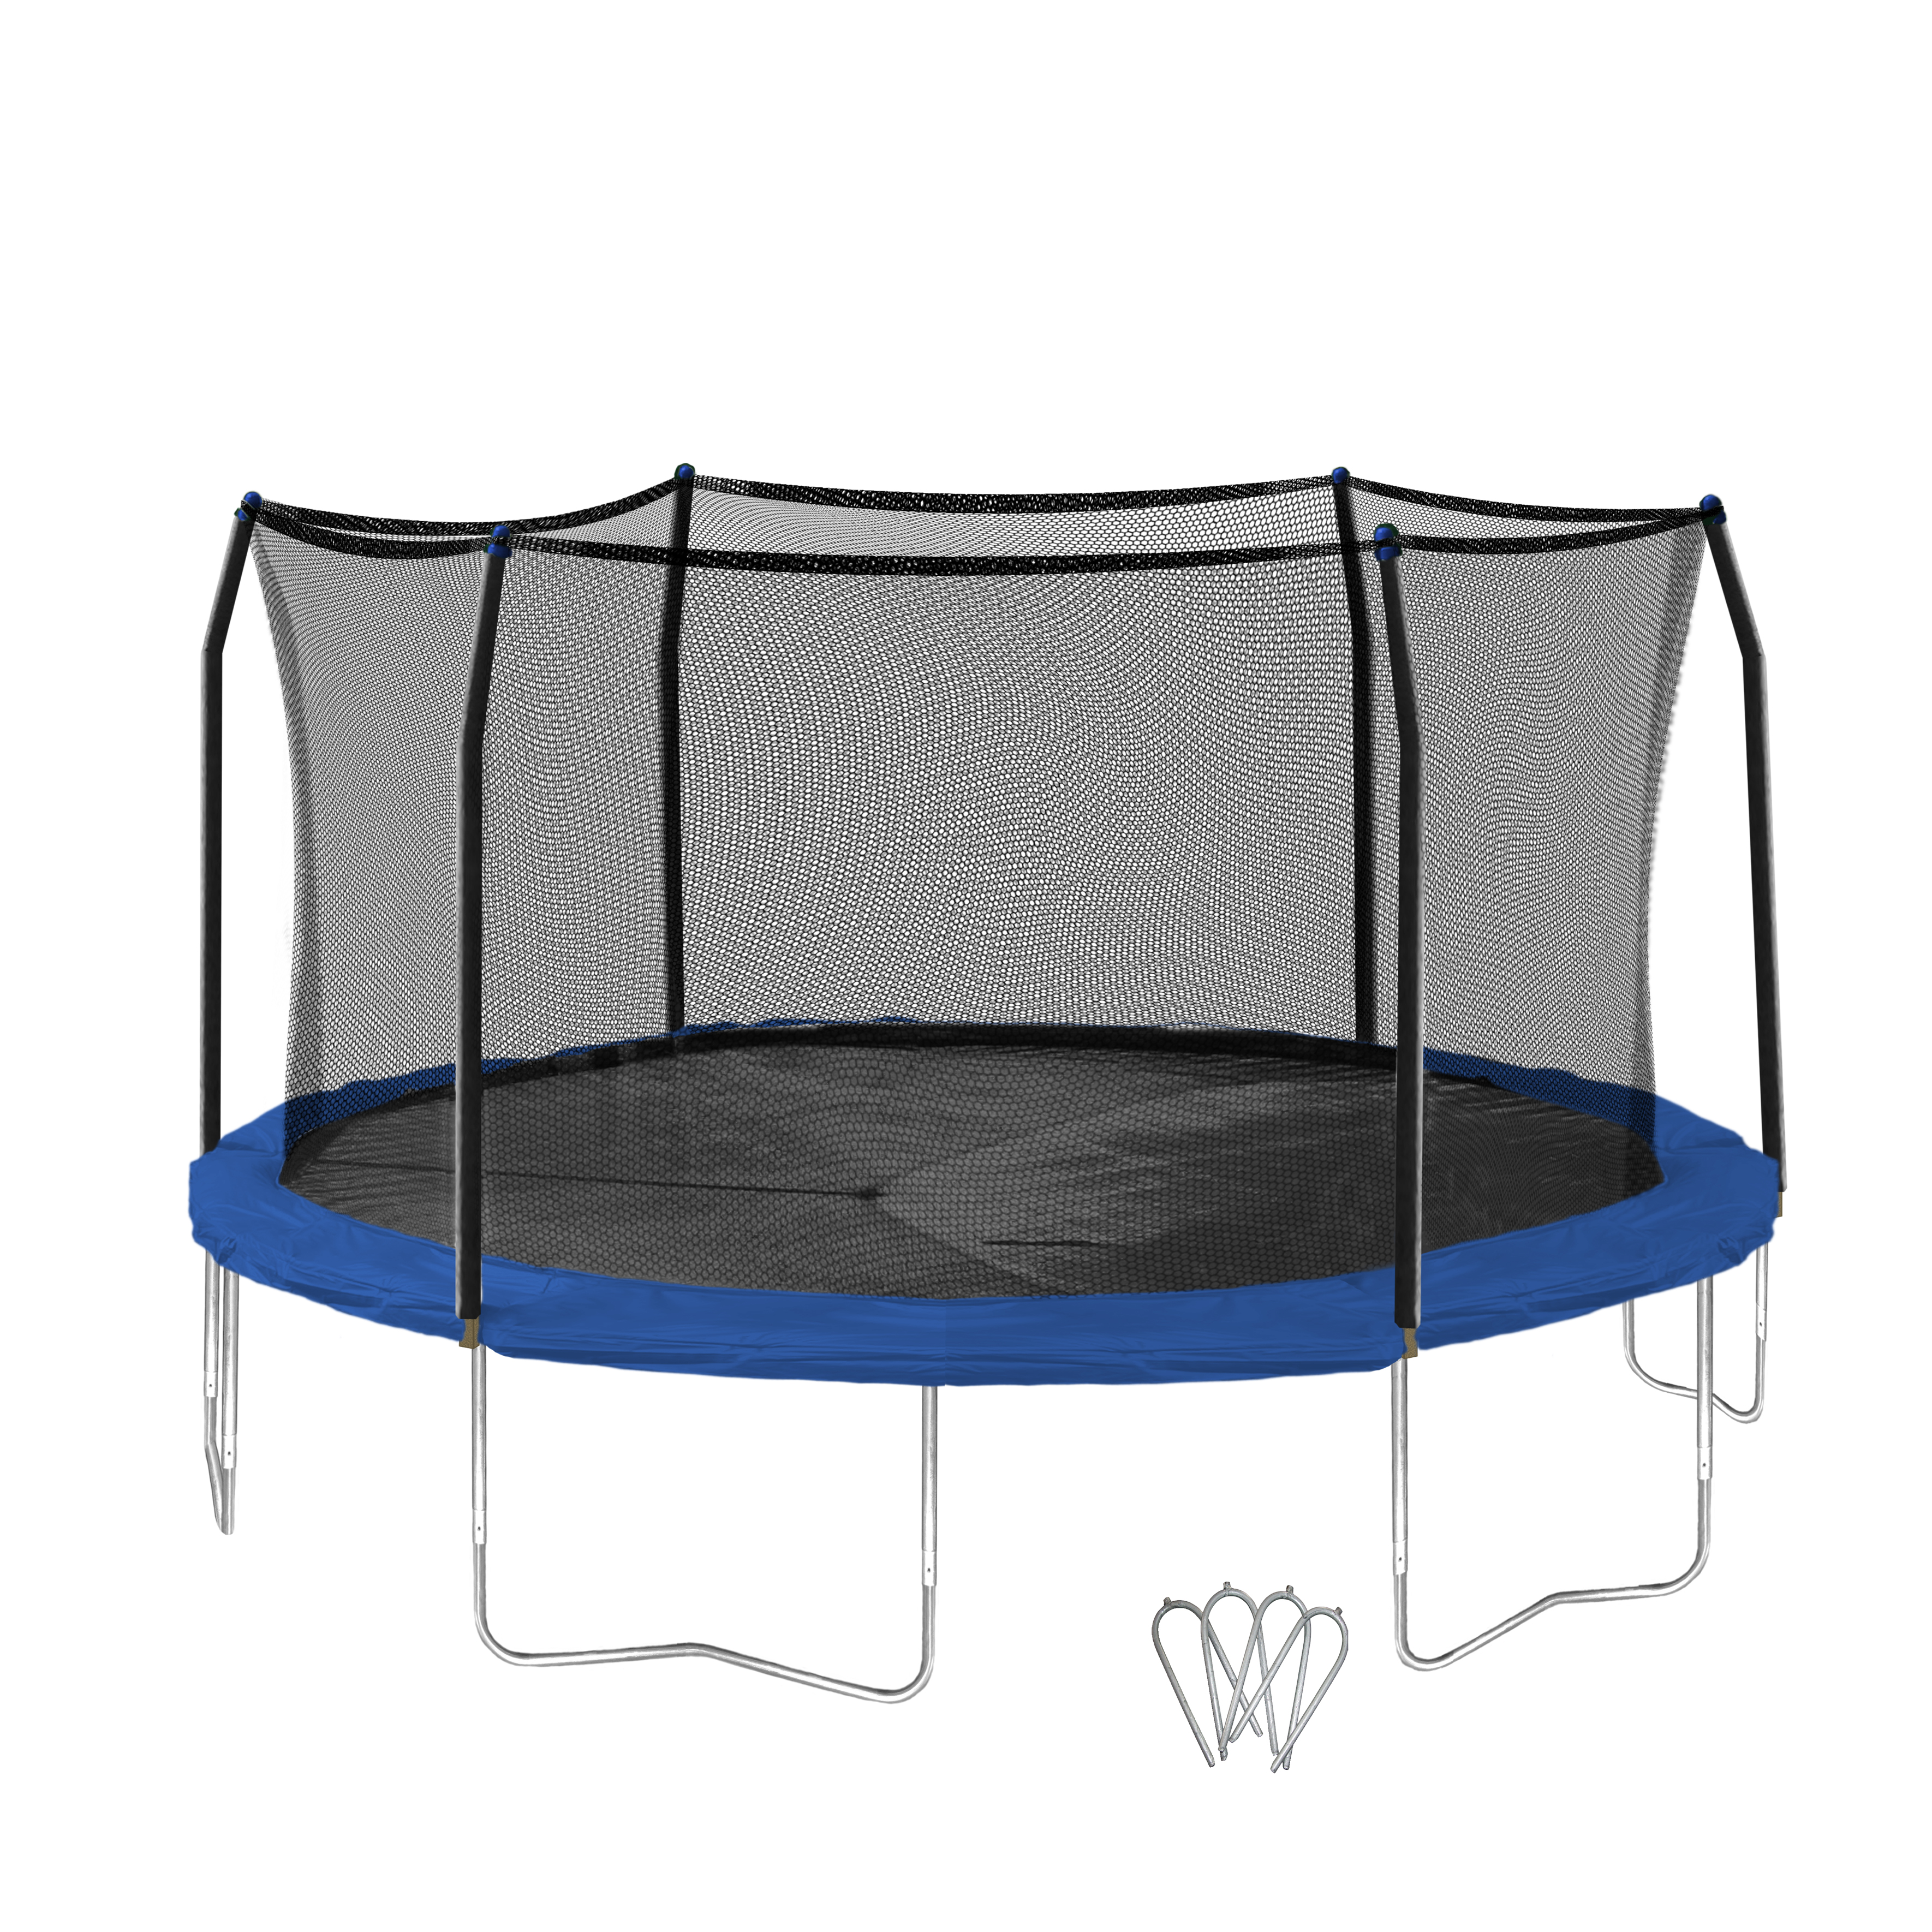 Skywalker Trampolines 16-Foot Trampoline, with Wind Stakes, Blue